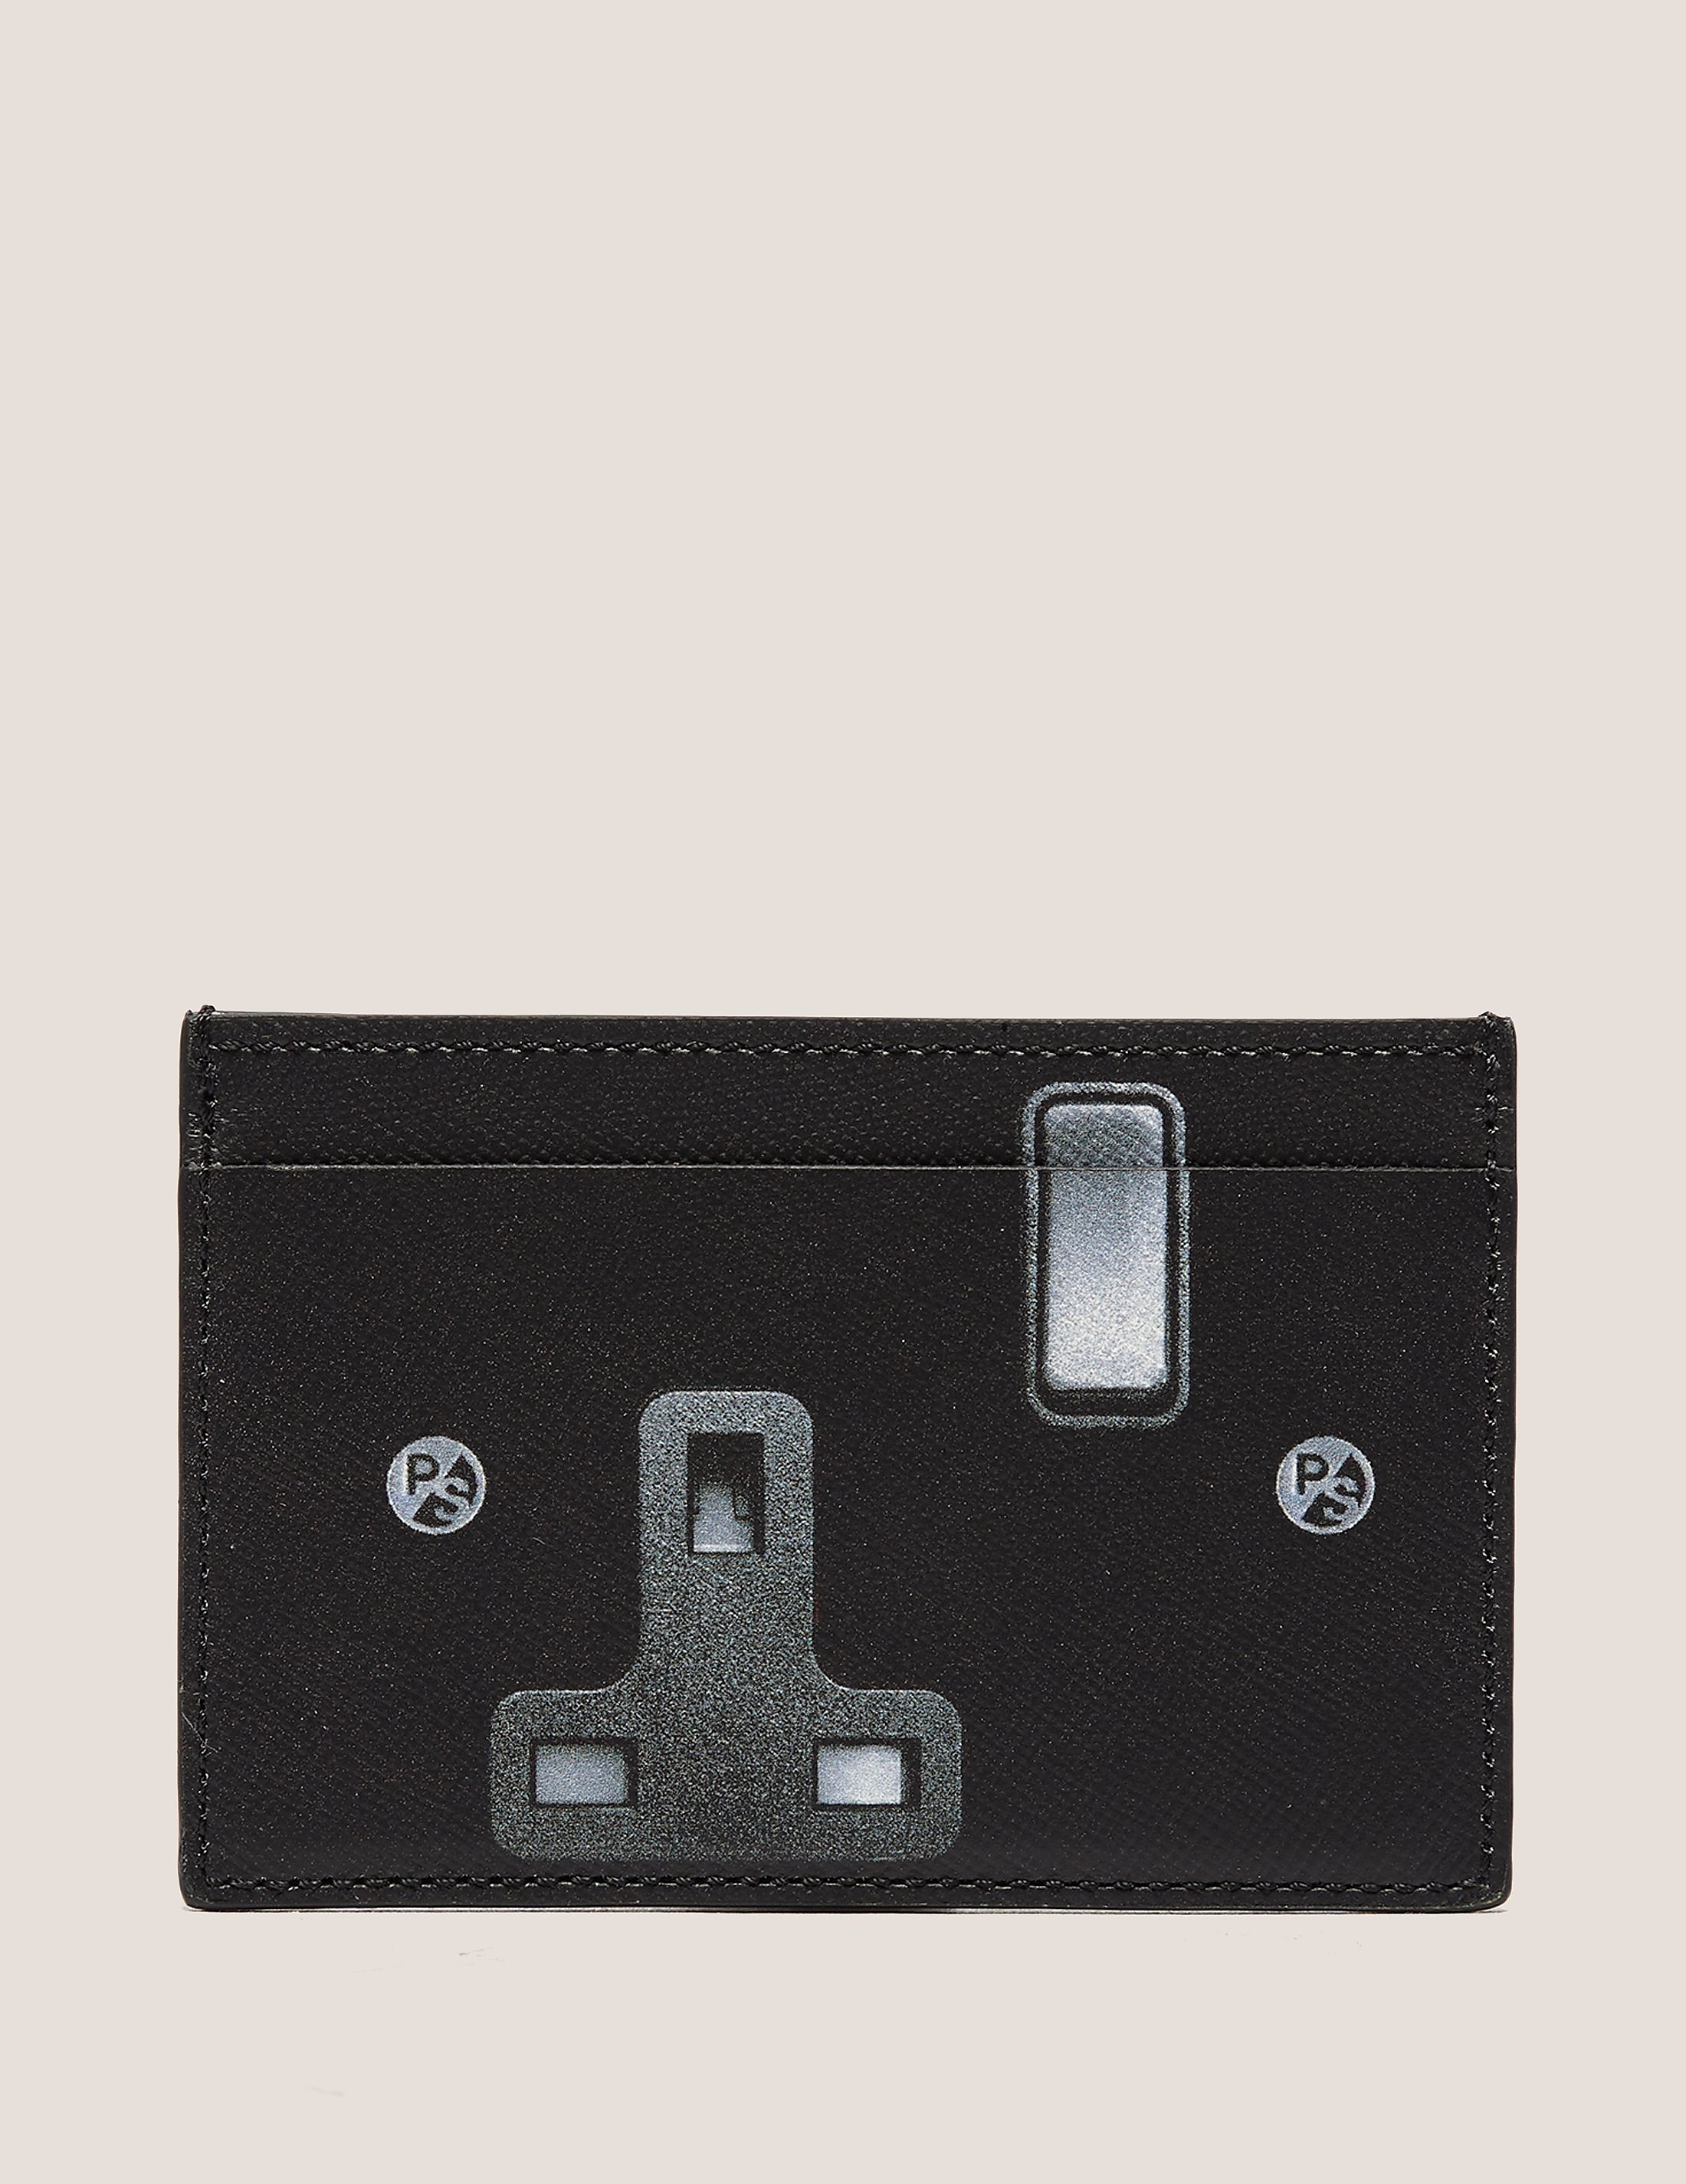 Paul Smith Plug Socket Credit Card Holder